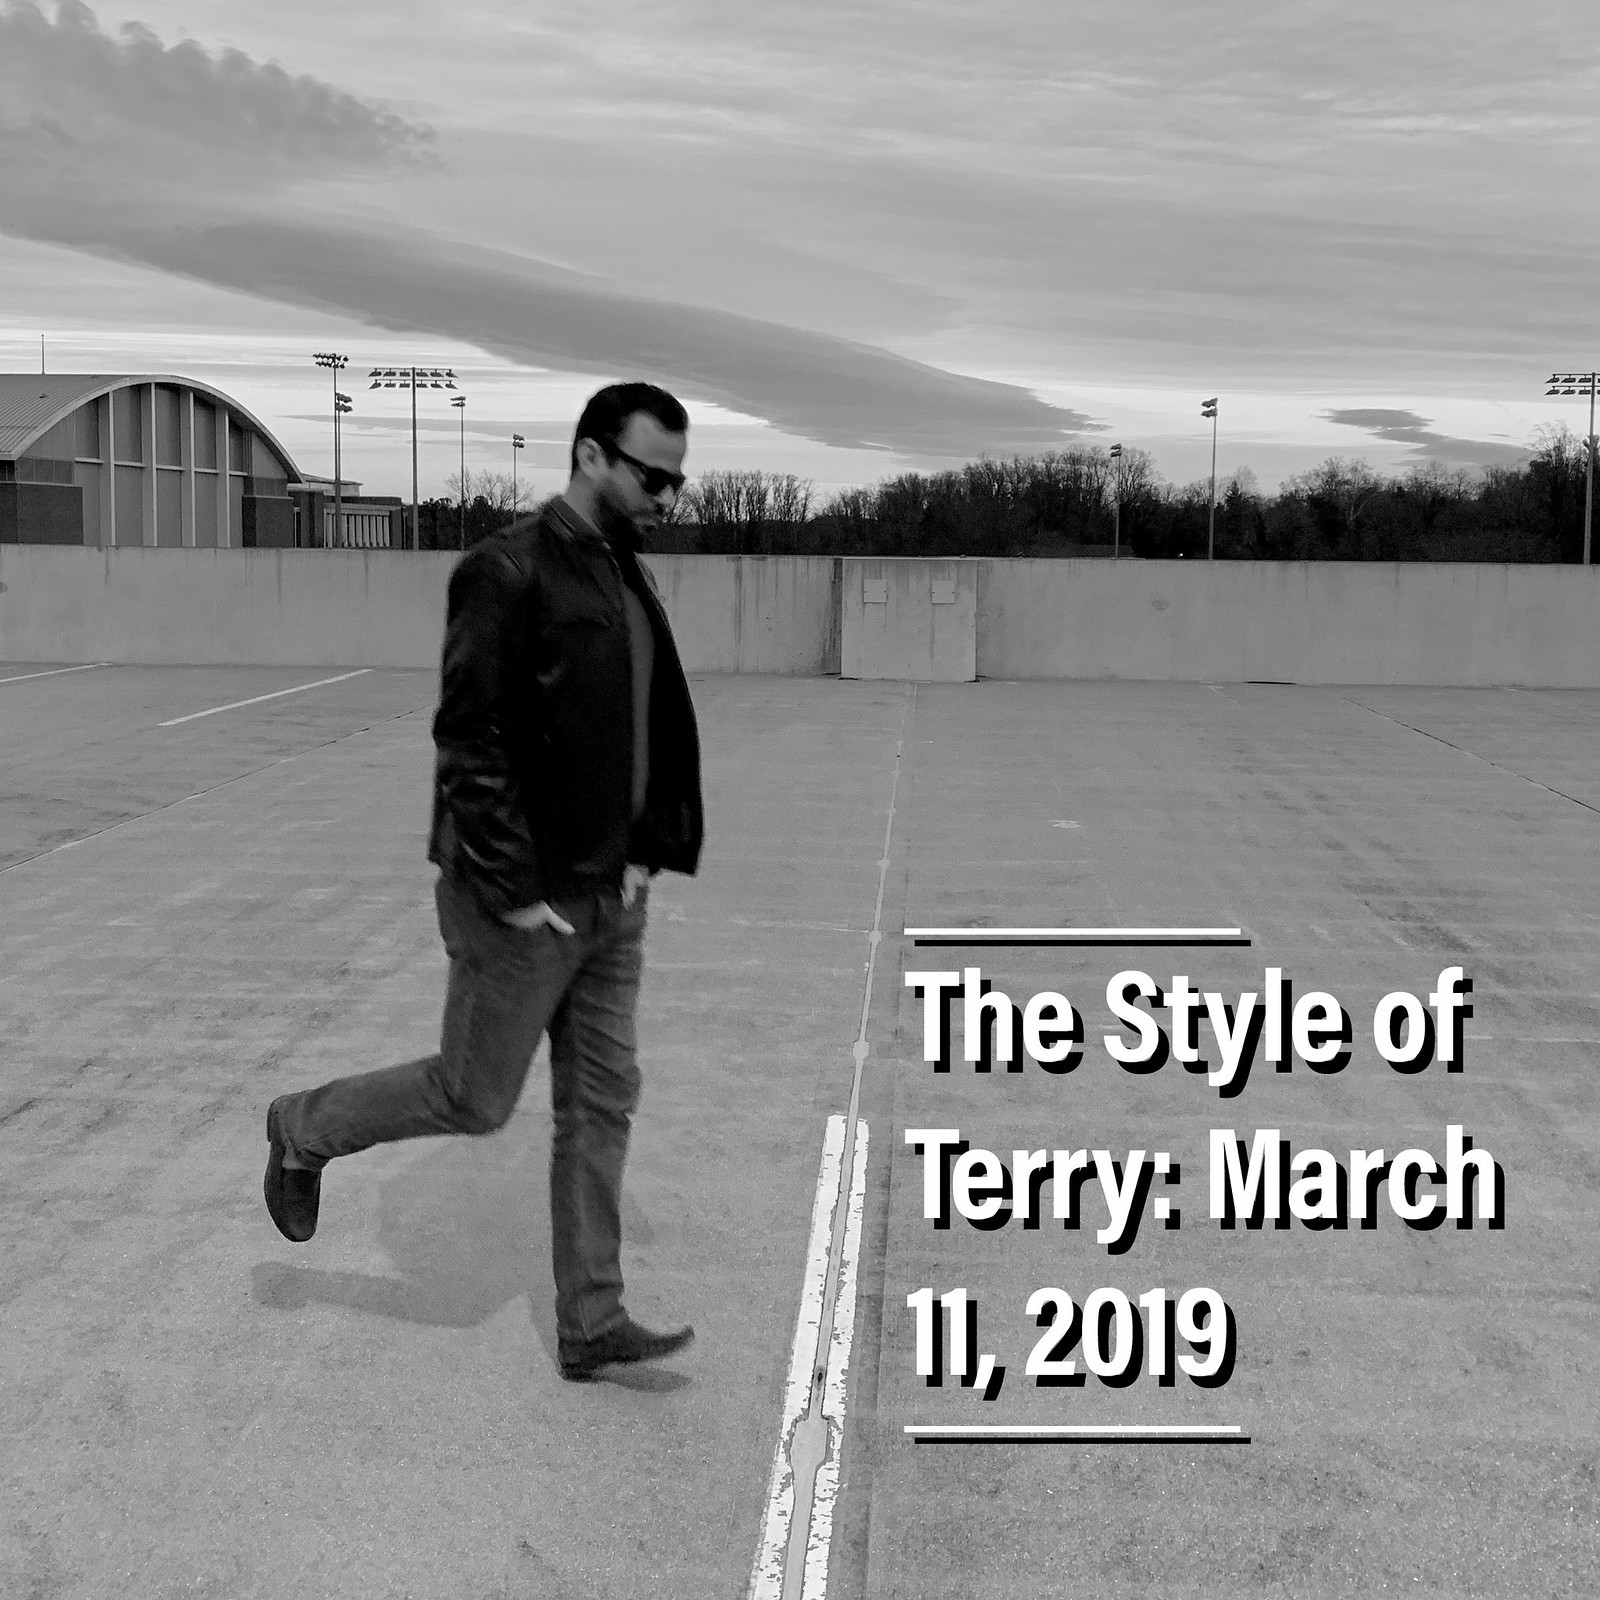 The Style of Terry: 3.11.19